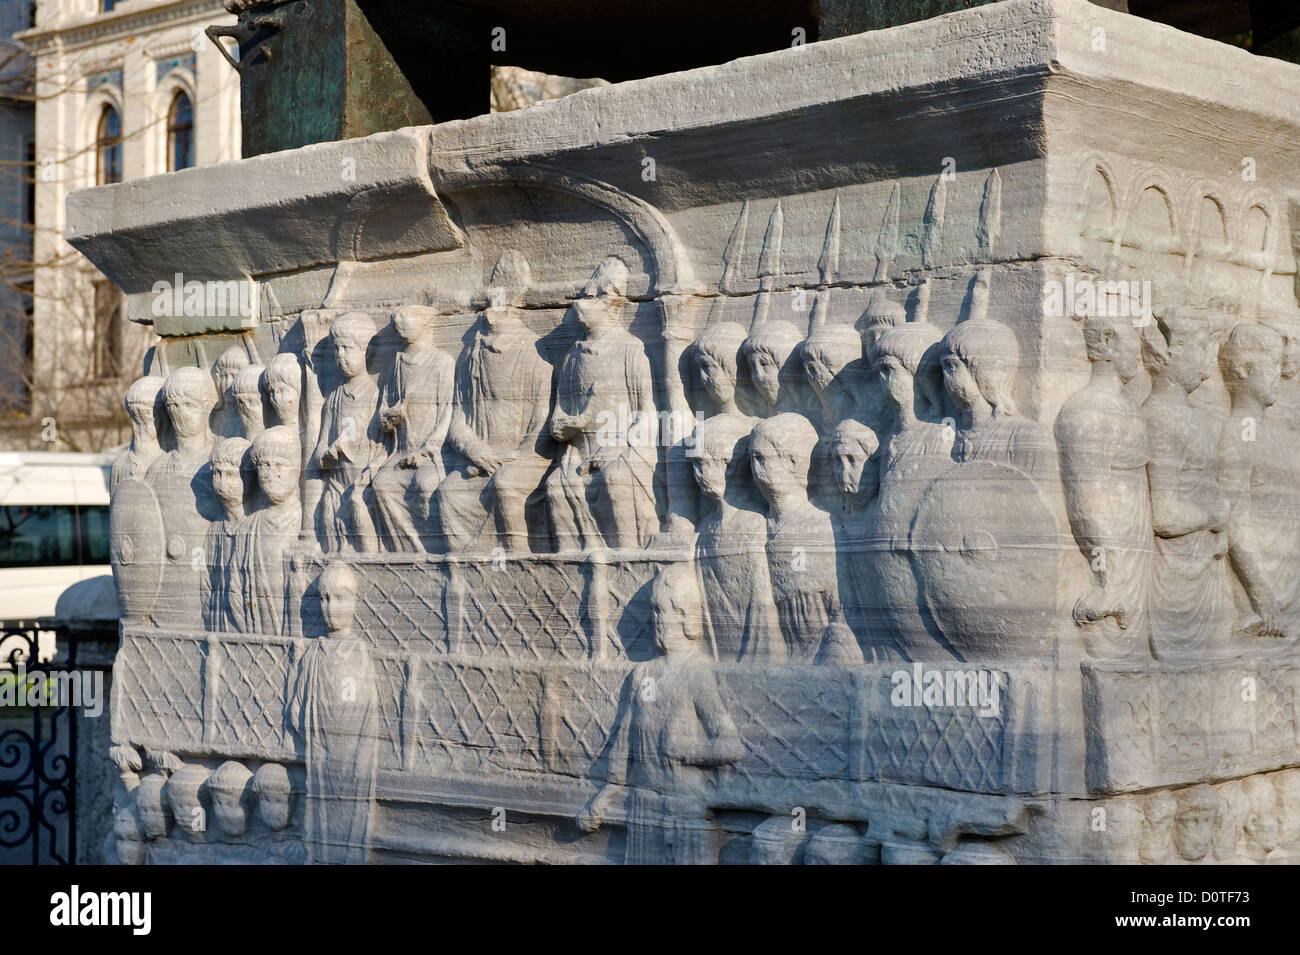 Base of obelisk in Sultanahmet Istanbul Turkey - Stock Image